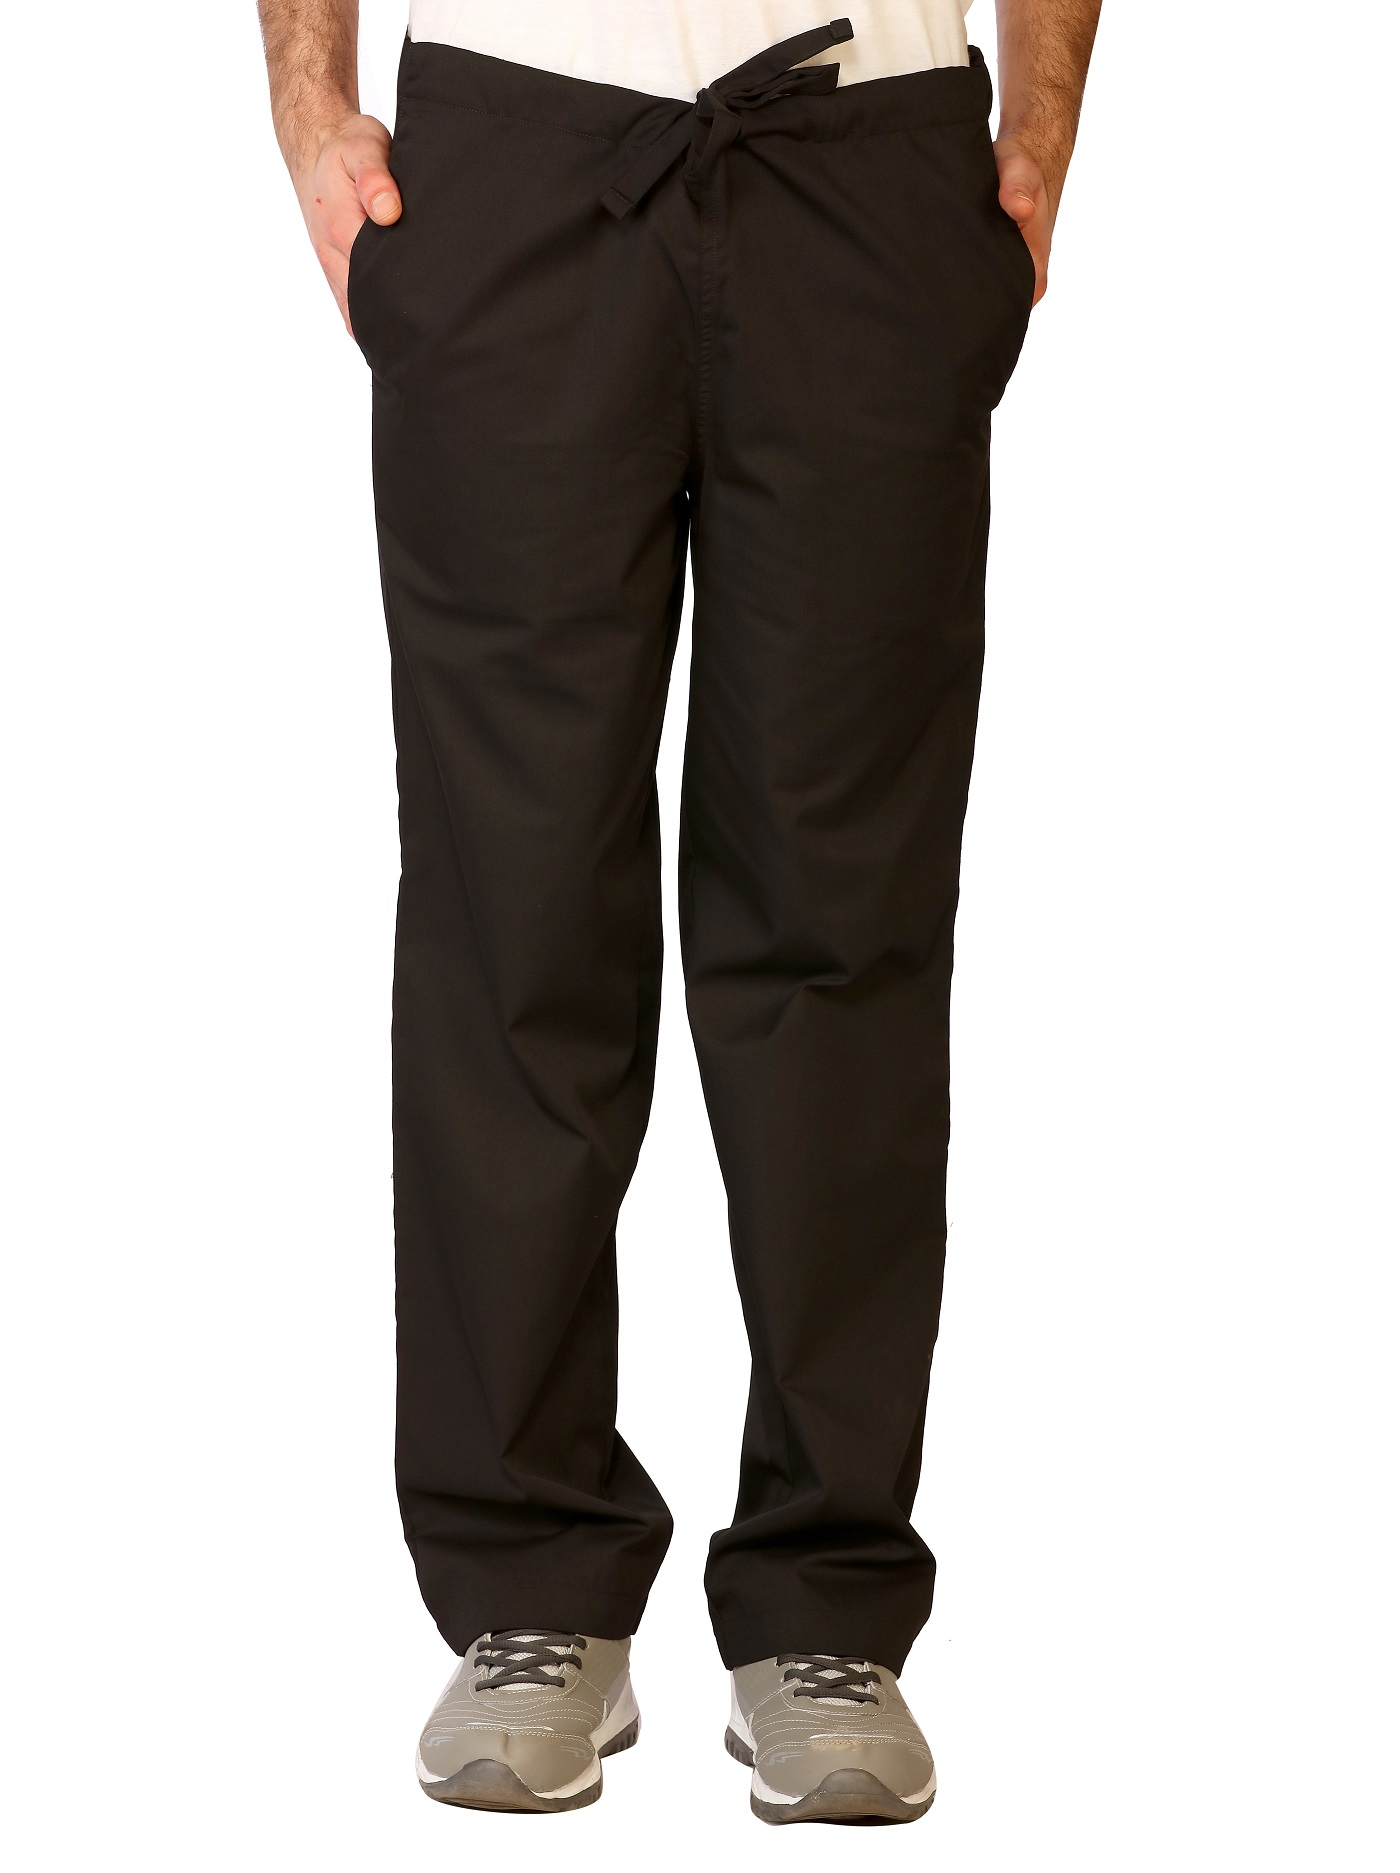 Unisex Stretch Scrub Pants, LifeThreads Contego Collection